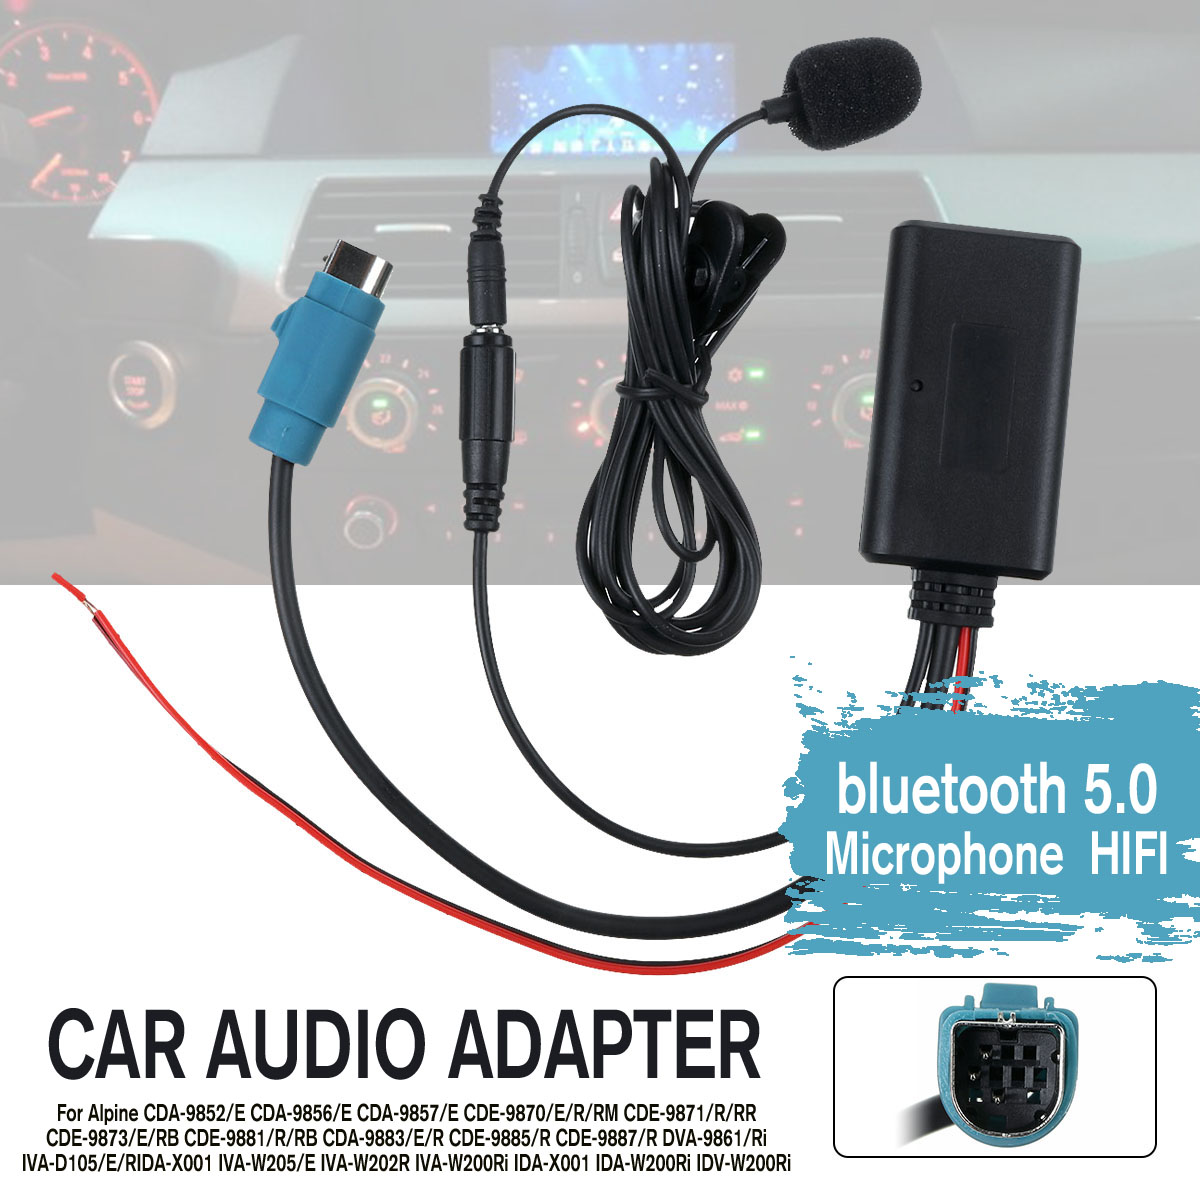 Wireless Car Audio Bluetooth Cable Adapter Microphone MIC AUX Music Player Handsfree For Alpine CD Host KCE-236B 9870/9872